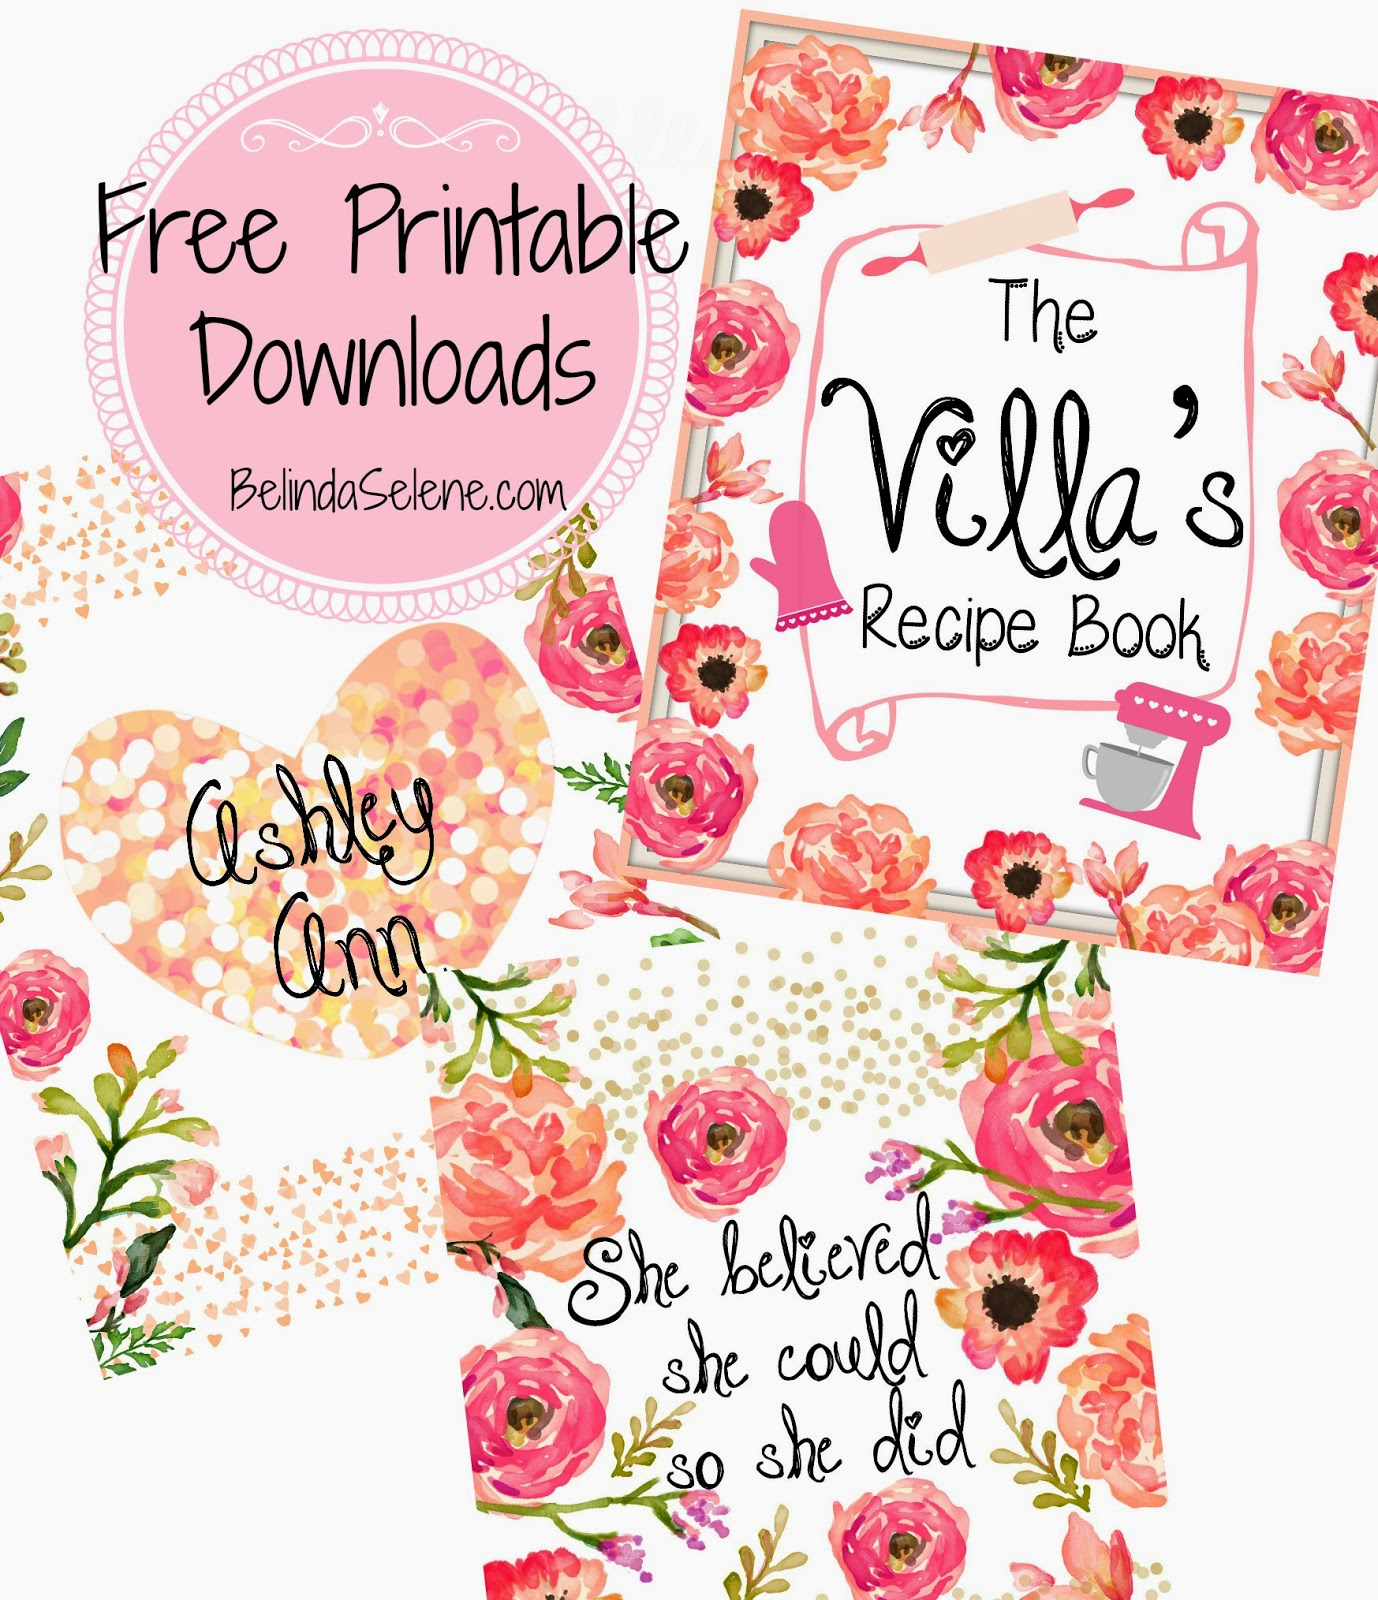 Book Cover Printable Zip : Belindaselene free gorgeous printable covers for erin